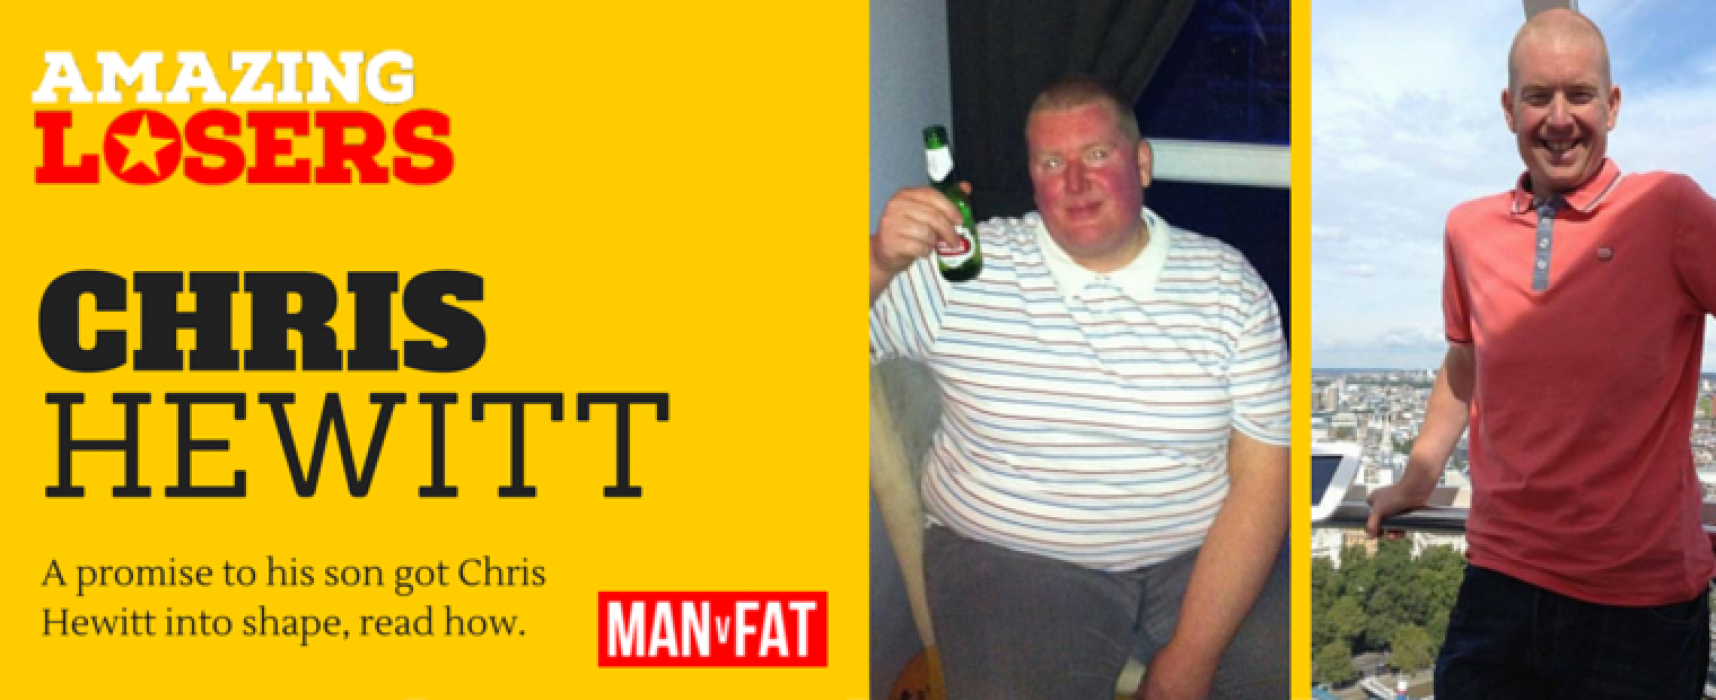 Amazing Loser: Chris Hewitt's Weight Loss Story